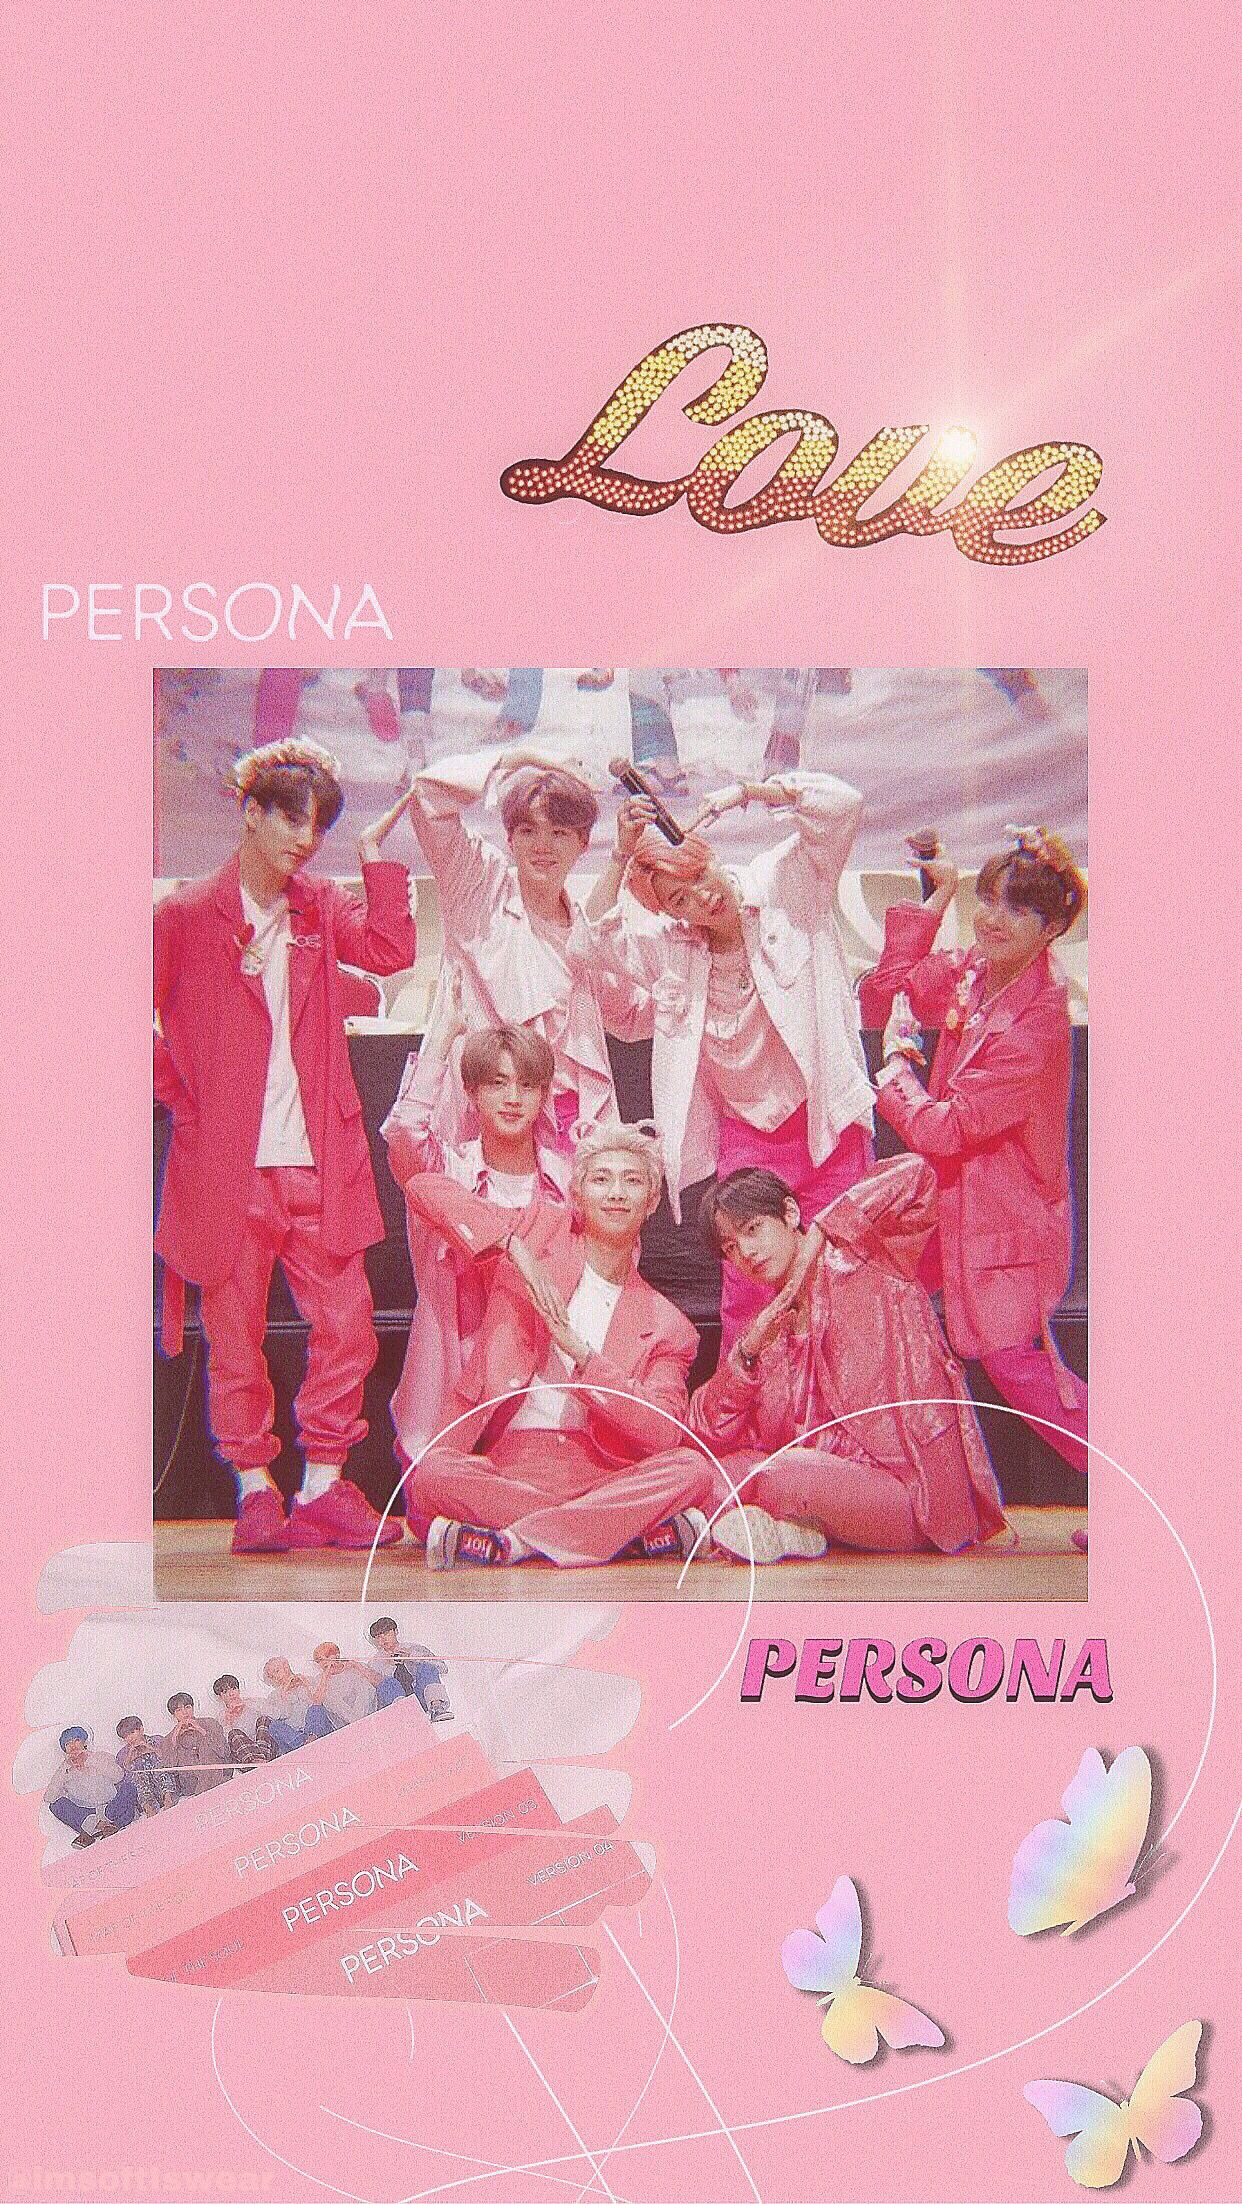 Persona I Made This At 2am Bts Aesthetic Wallpaper For Phone Pink Walpaper Pink Wallpaper Iphone